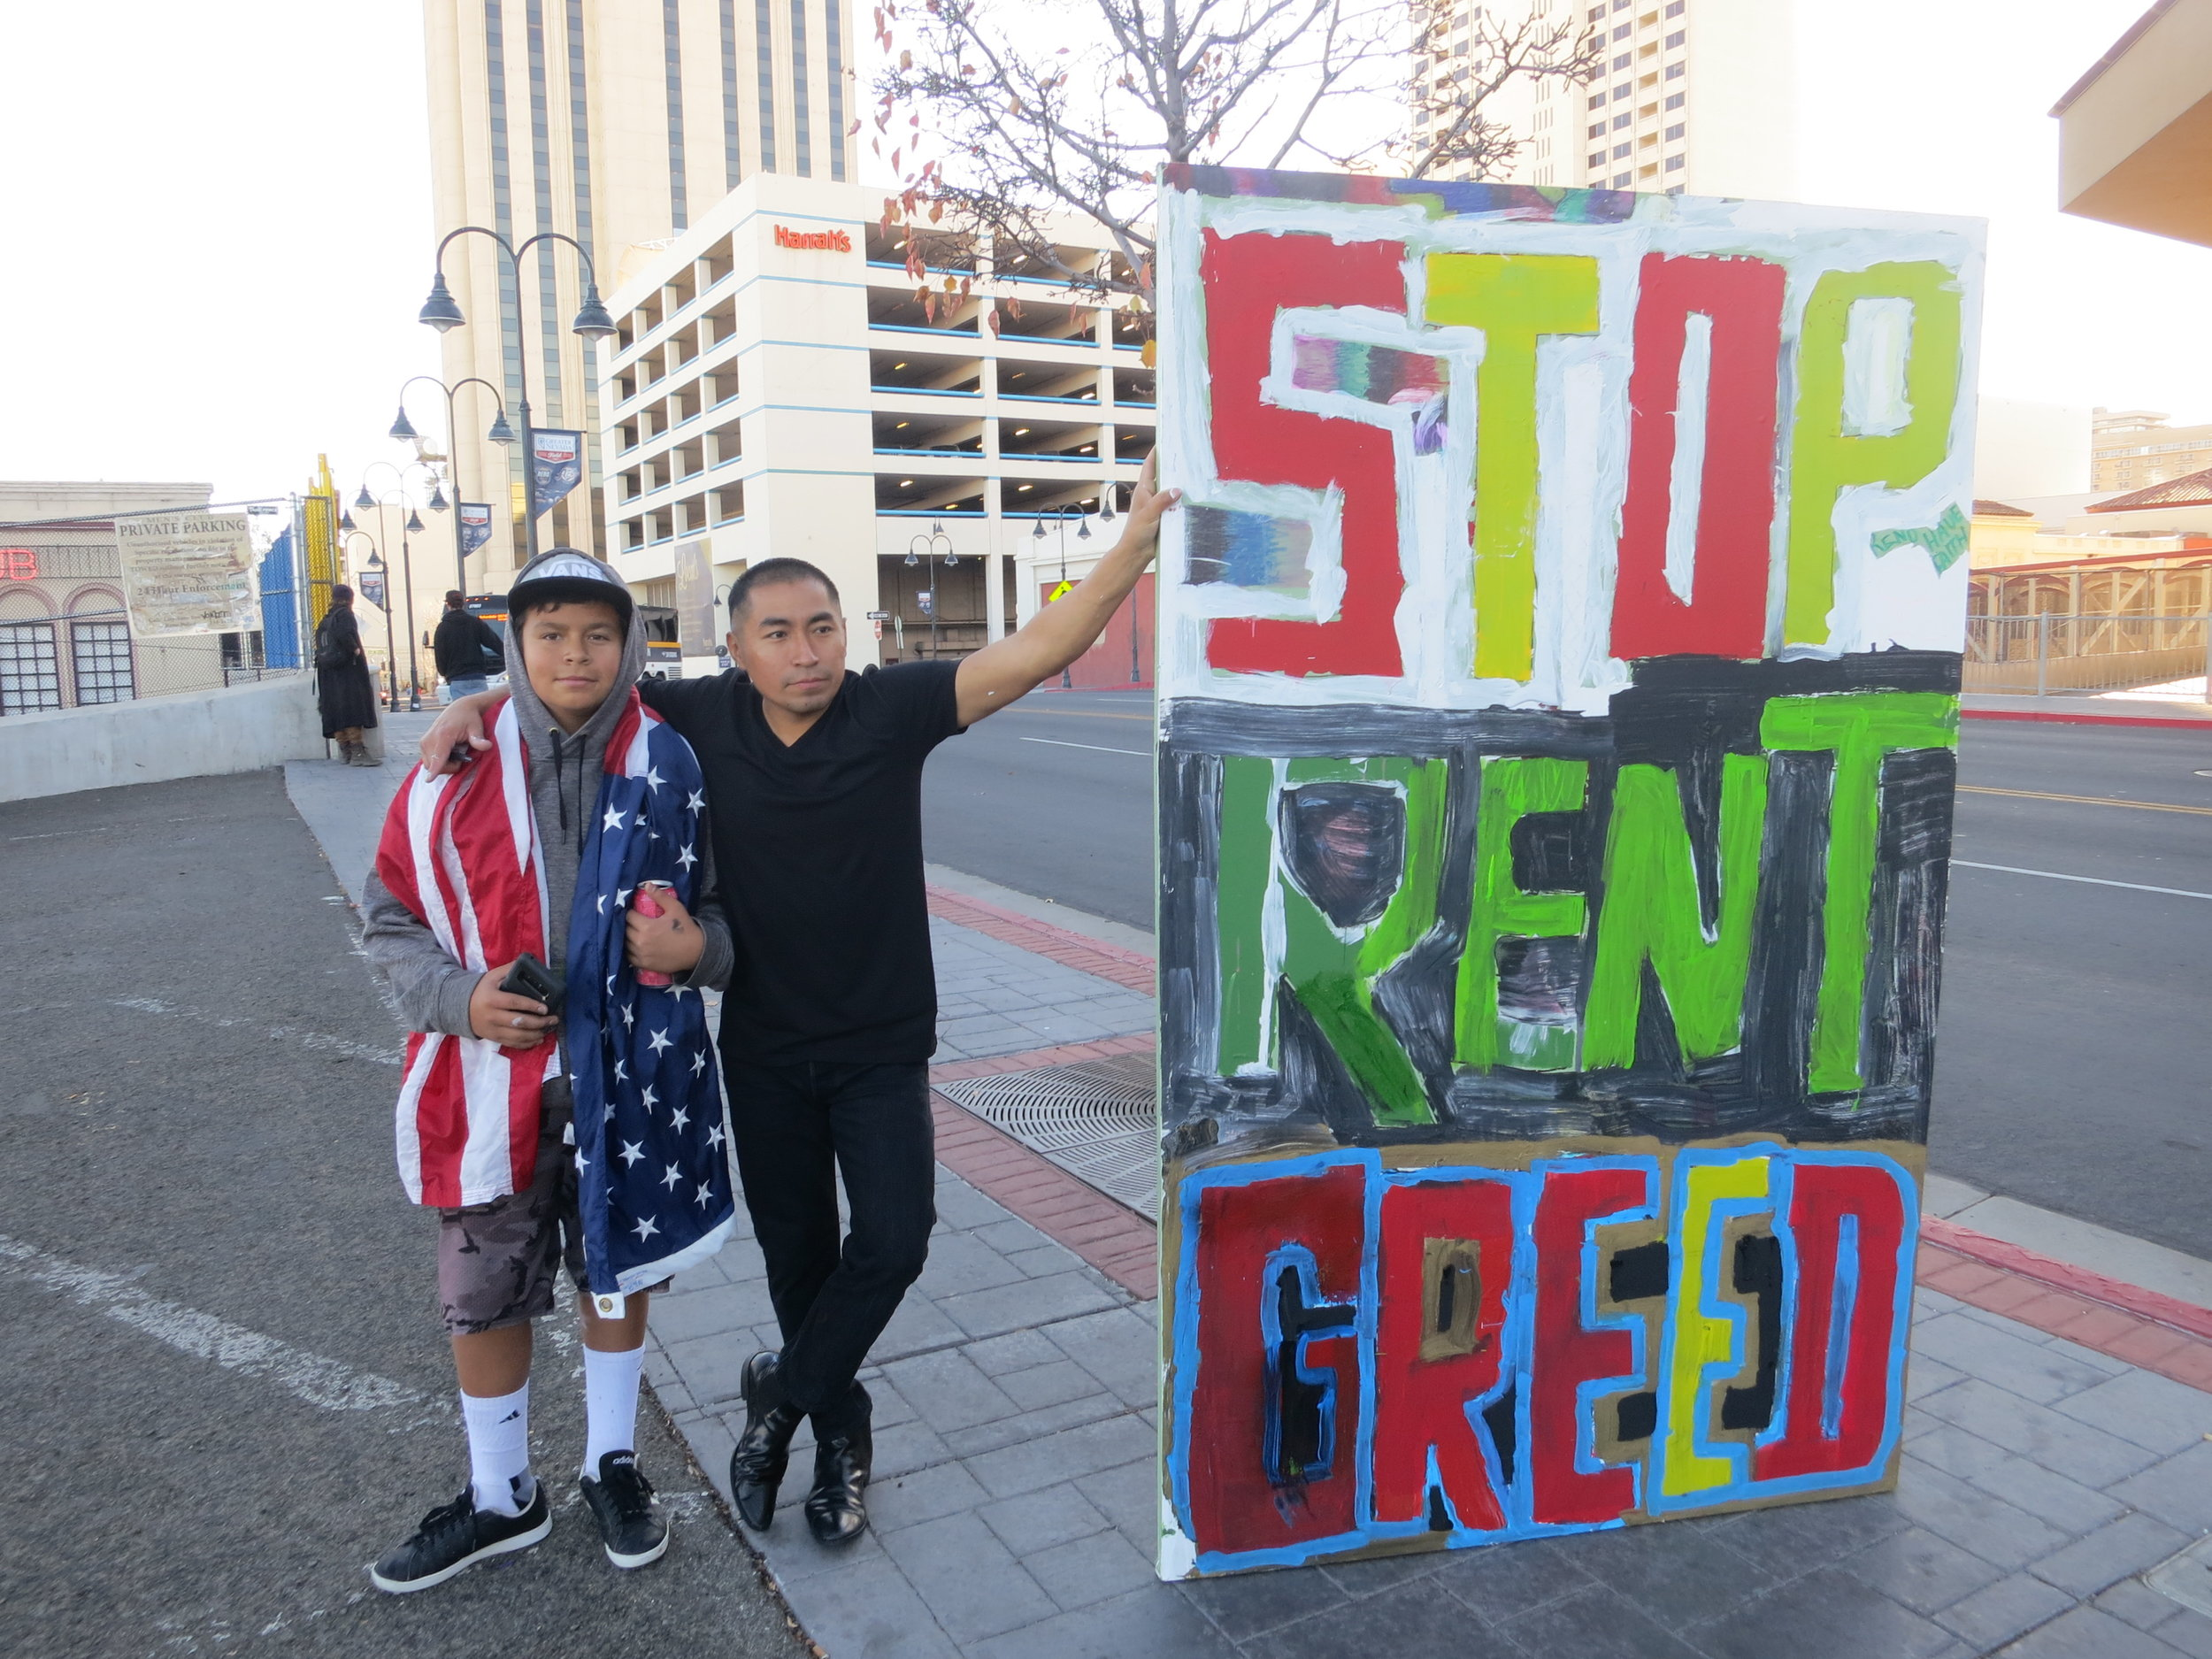 """If you think about it too much, you will never do it,"" Jhonattan said of his idea to protest the affordable housing crisis with motel kids. On Sunday, Carlos (left) and David led a group of younger kids parading a sign denouncing surging rent prices in Reno."